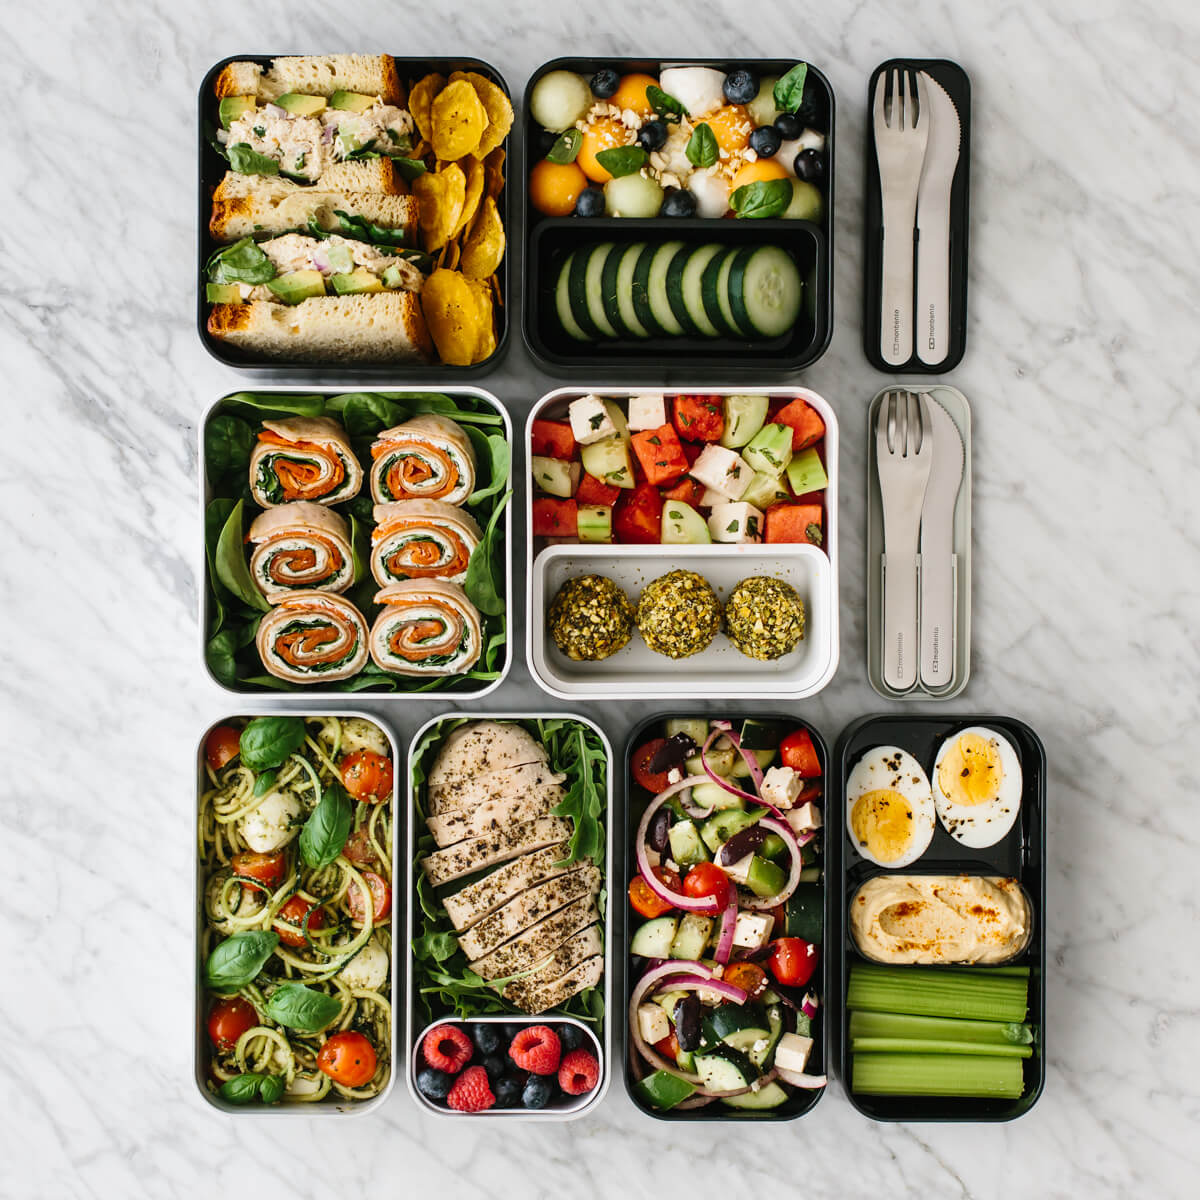 Several bento box lunches on a counter with cutlery.